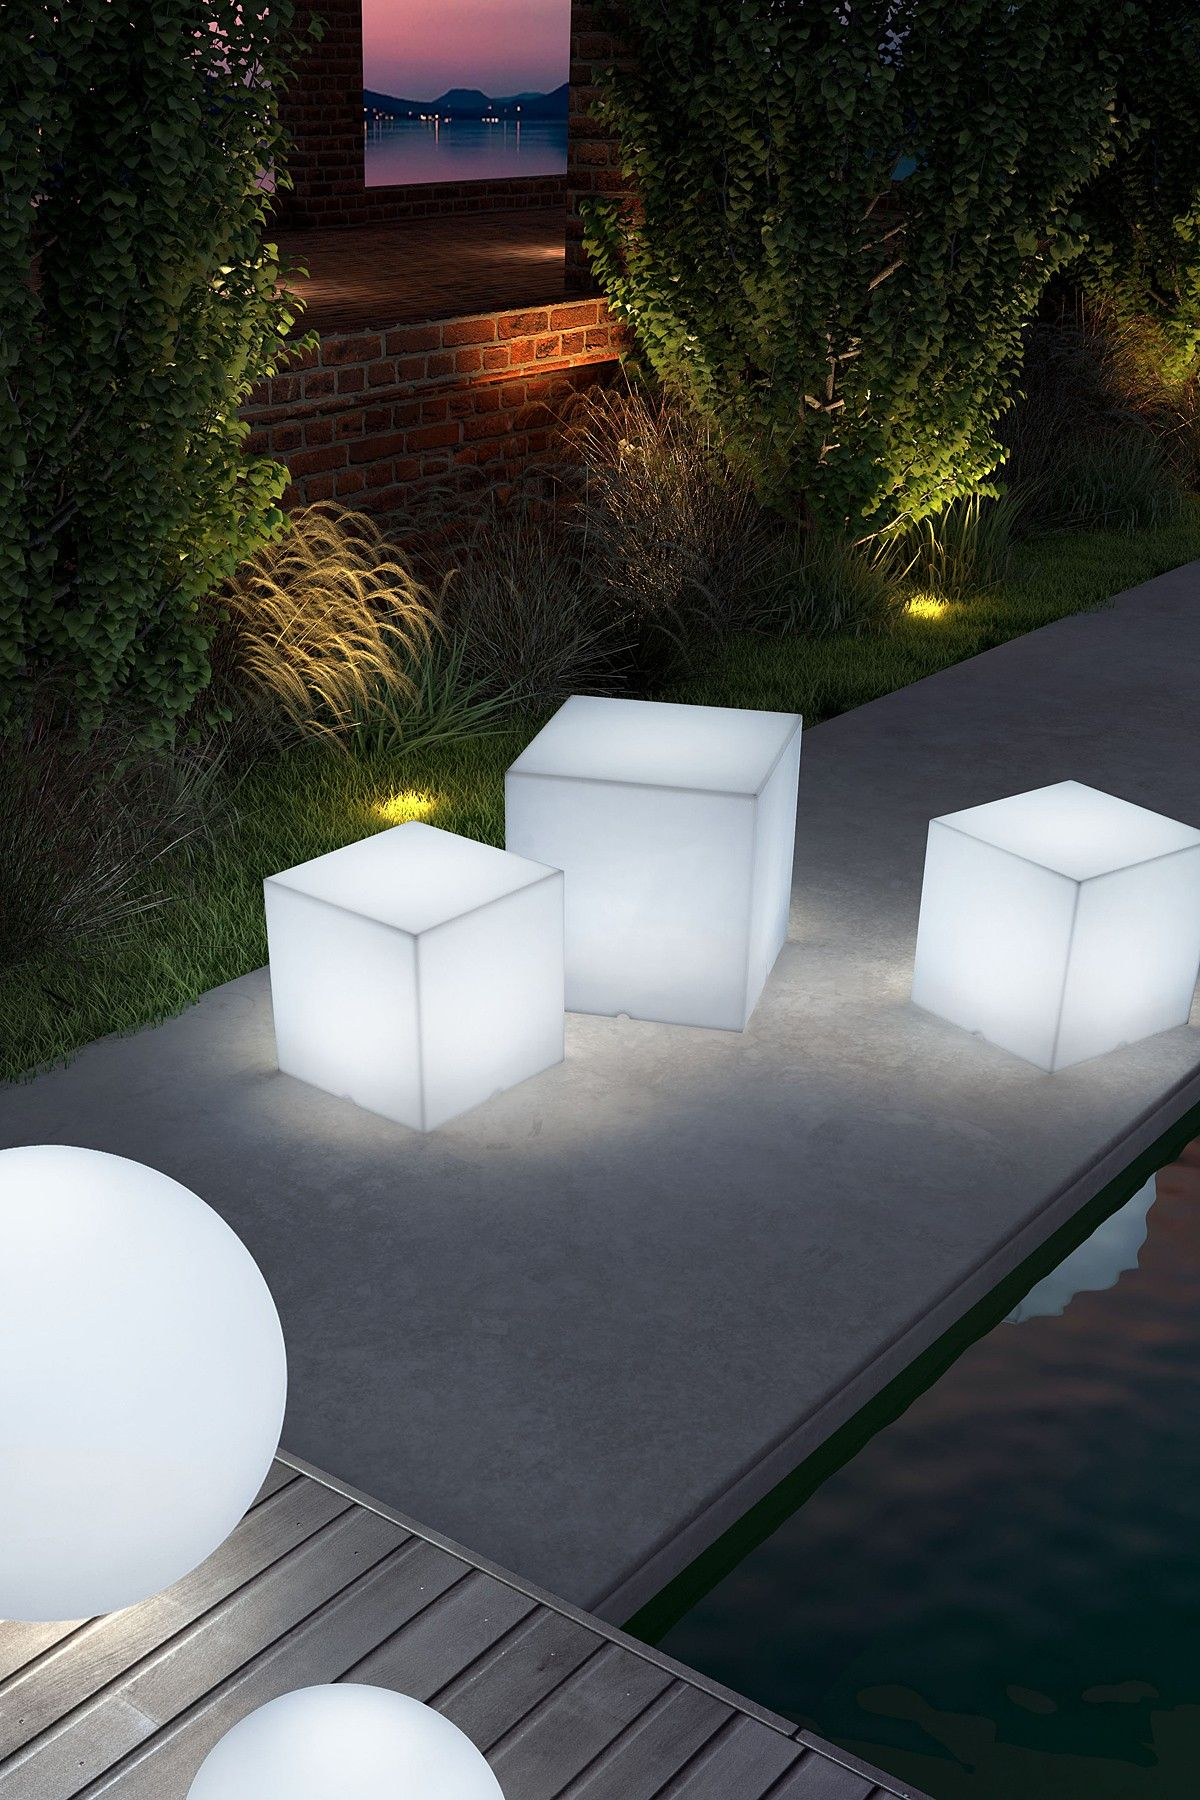 Cube illuminated stool / side table | furniture that doubles as lighting #product_design